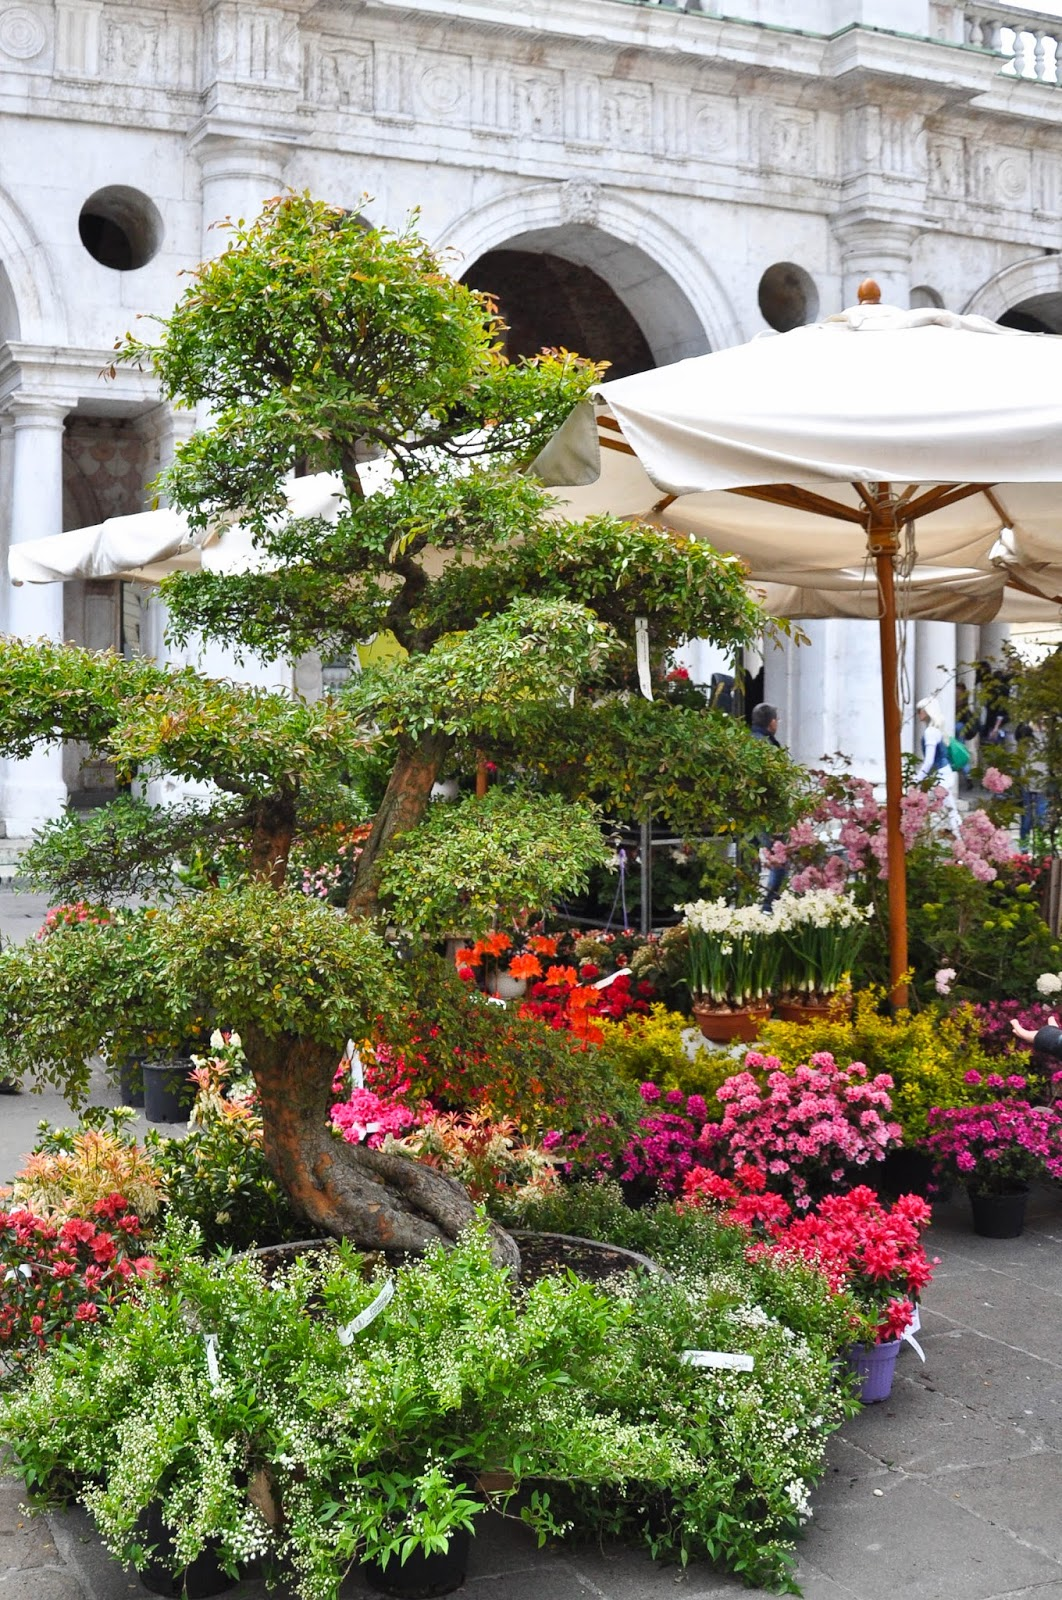 Potted tree, 7th Edition of 'Fiori, colori, e...' - Floriculture market show, Vicenza, Italy